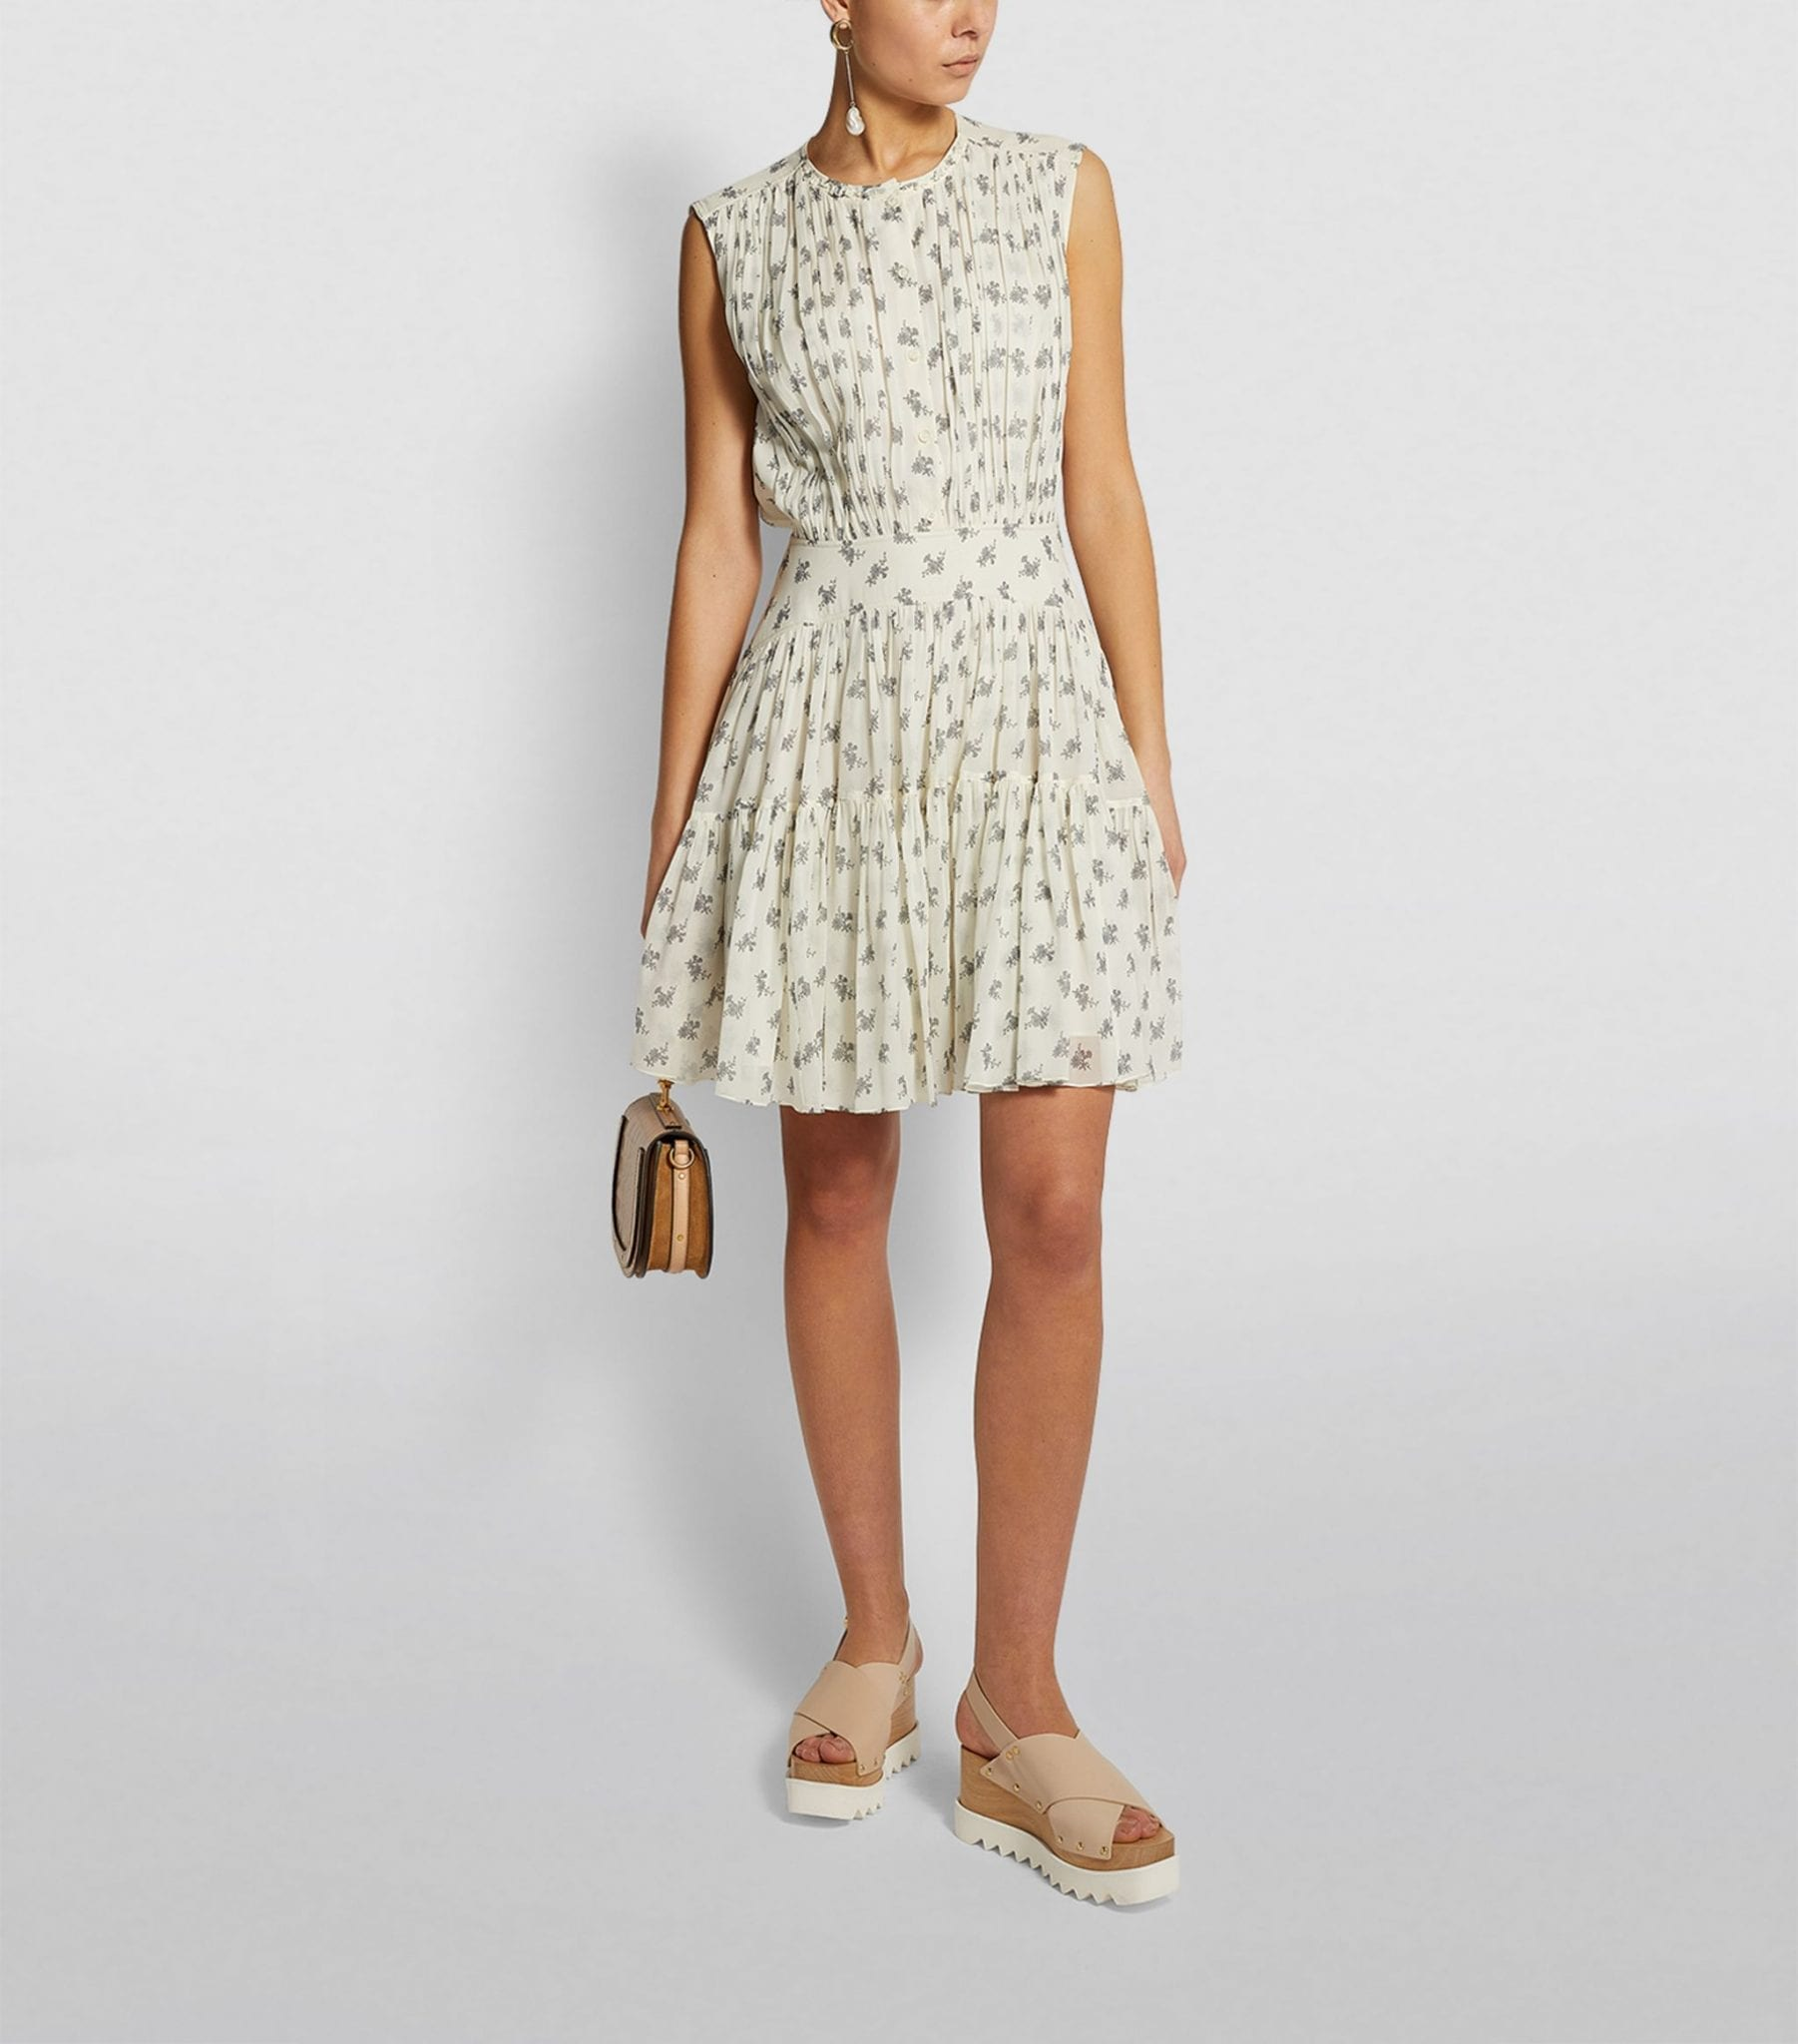 CHLOÉ Sleeveless Floral Mini Dress